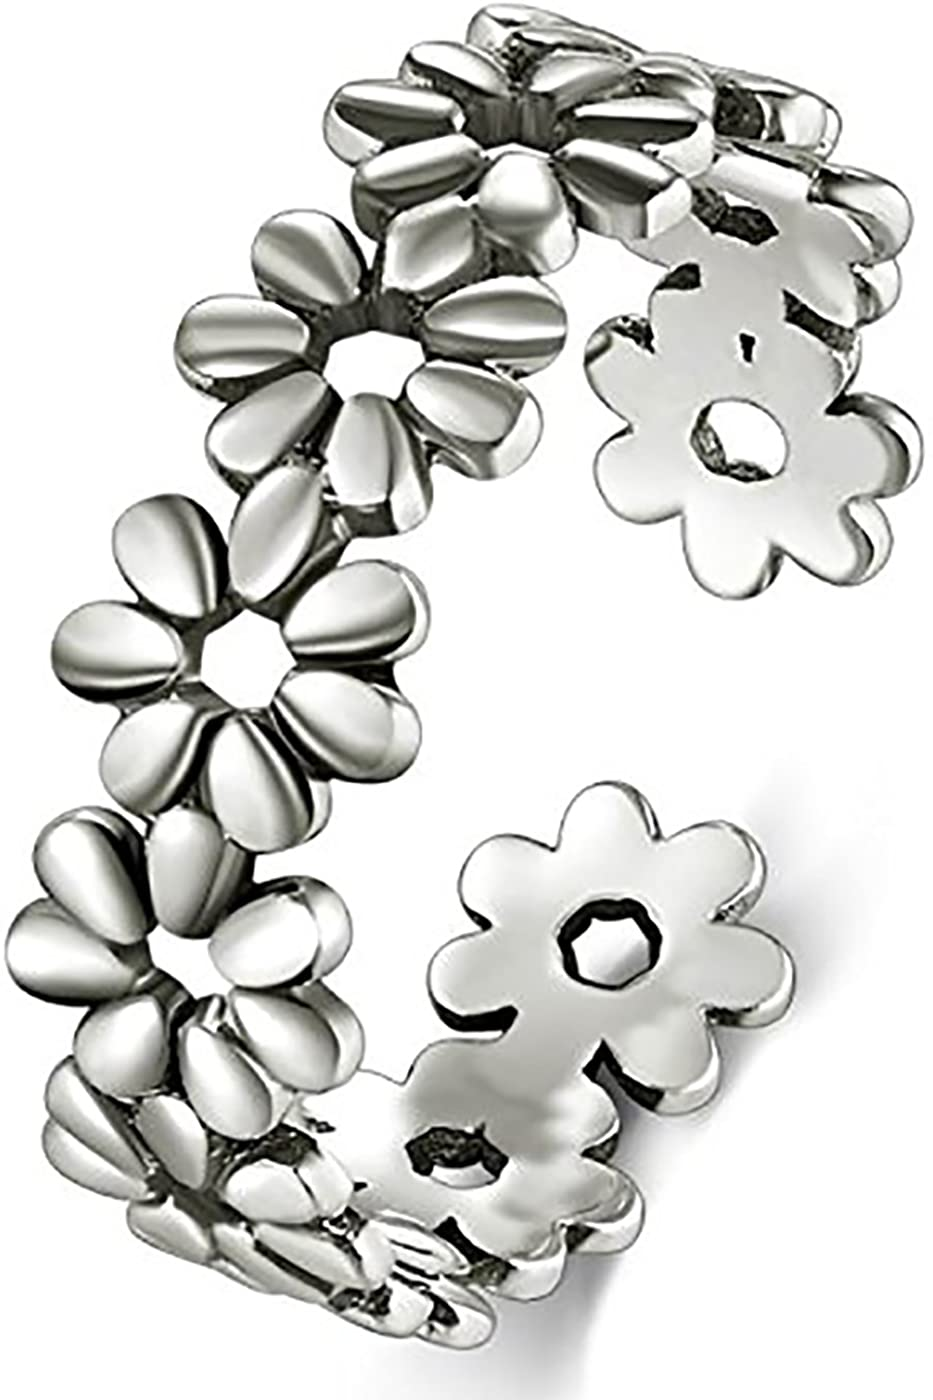 Toe Rings for Women Stainless Steel Daisy Flower Hawaiian Adjustable Band Ring Benefiting The American Red Cross Summer Beach